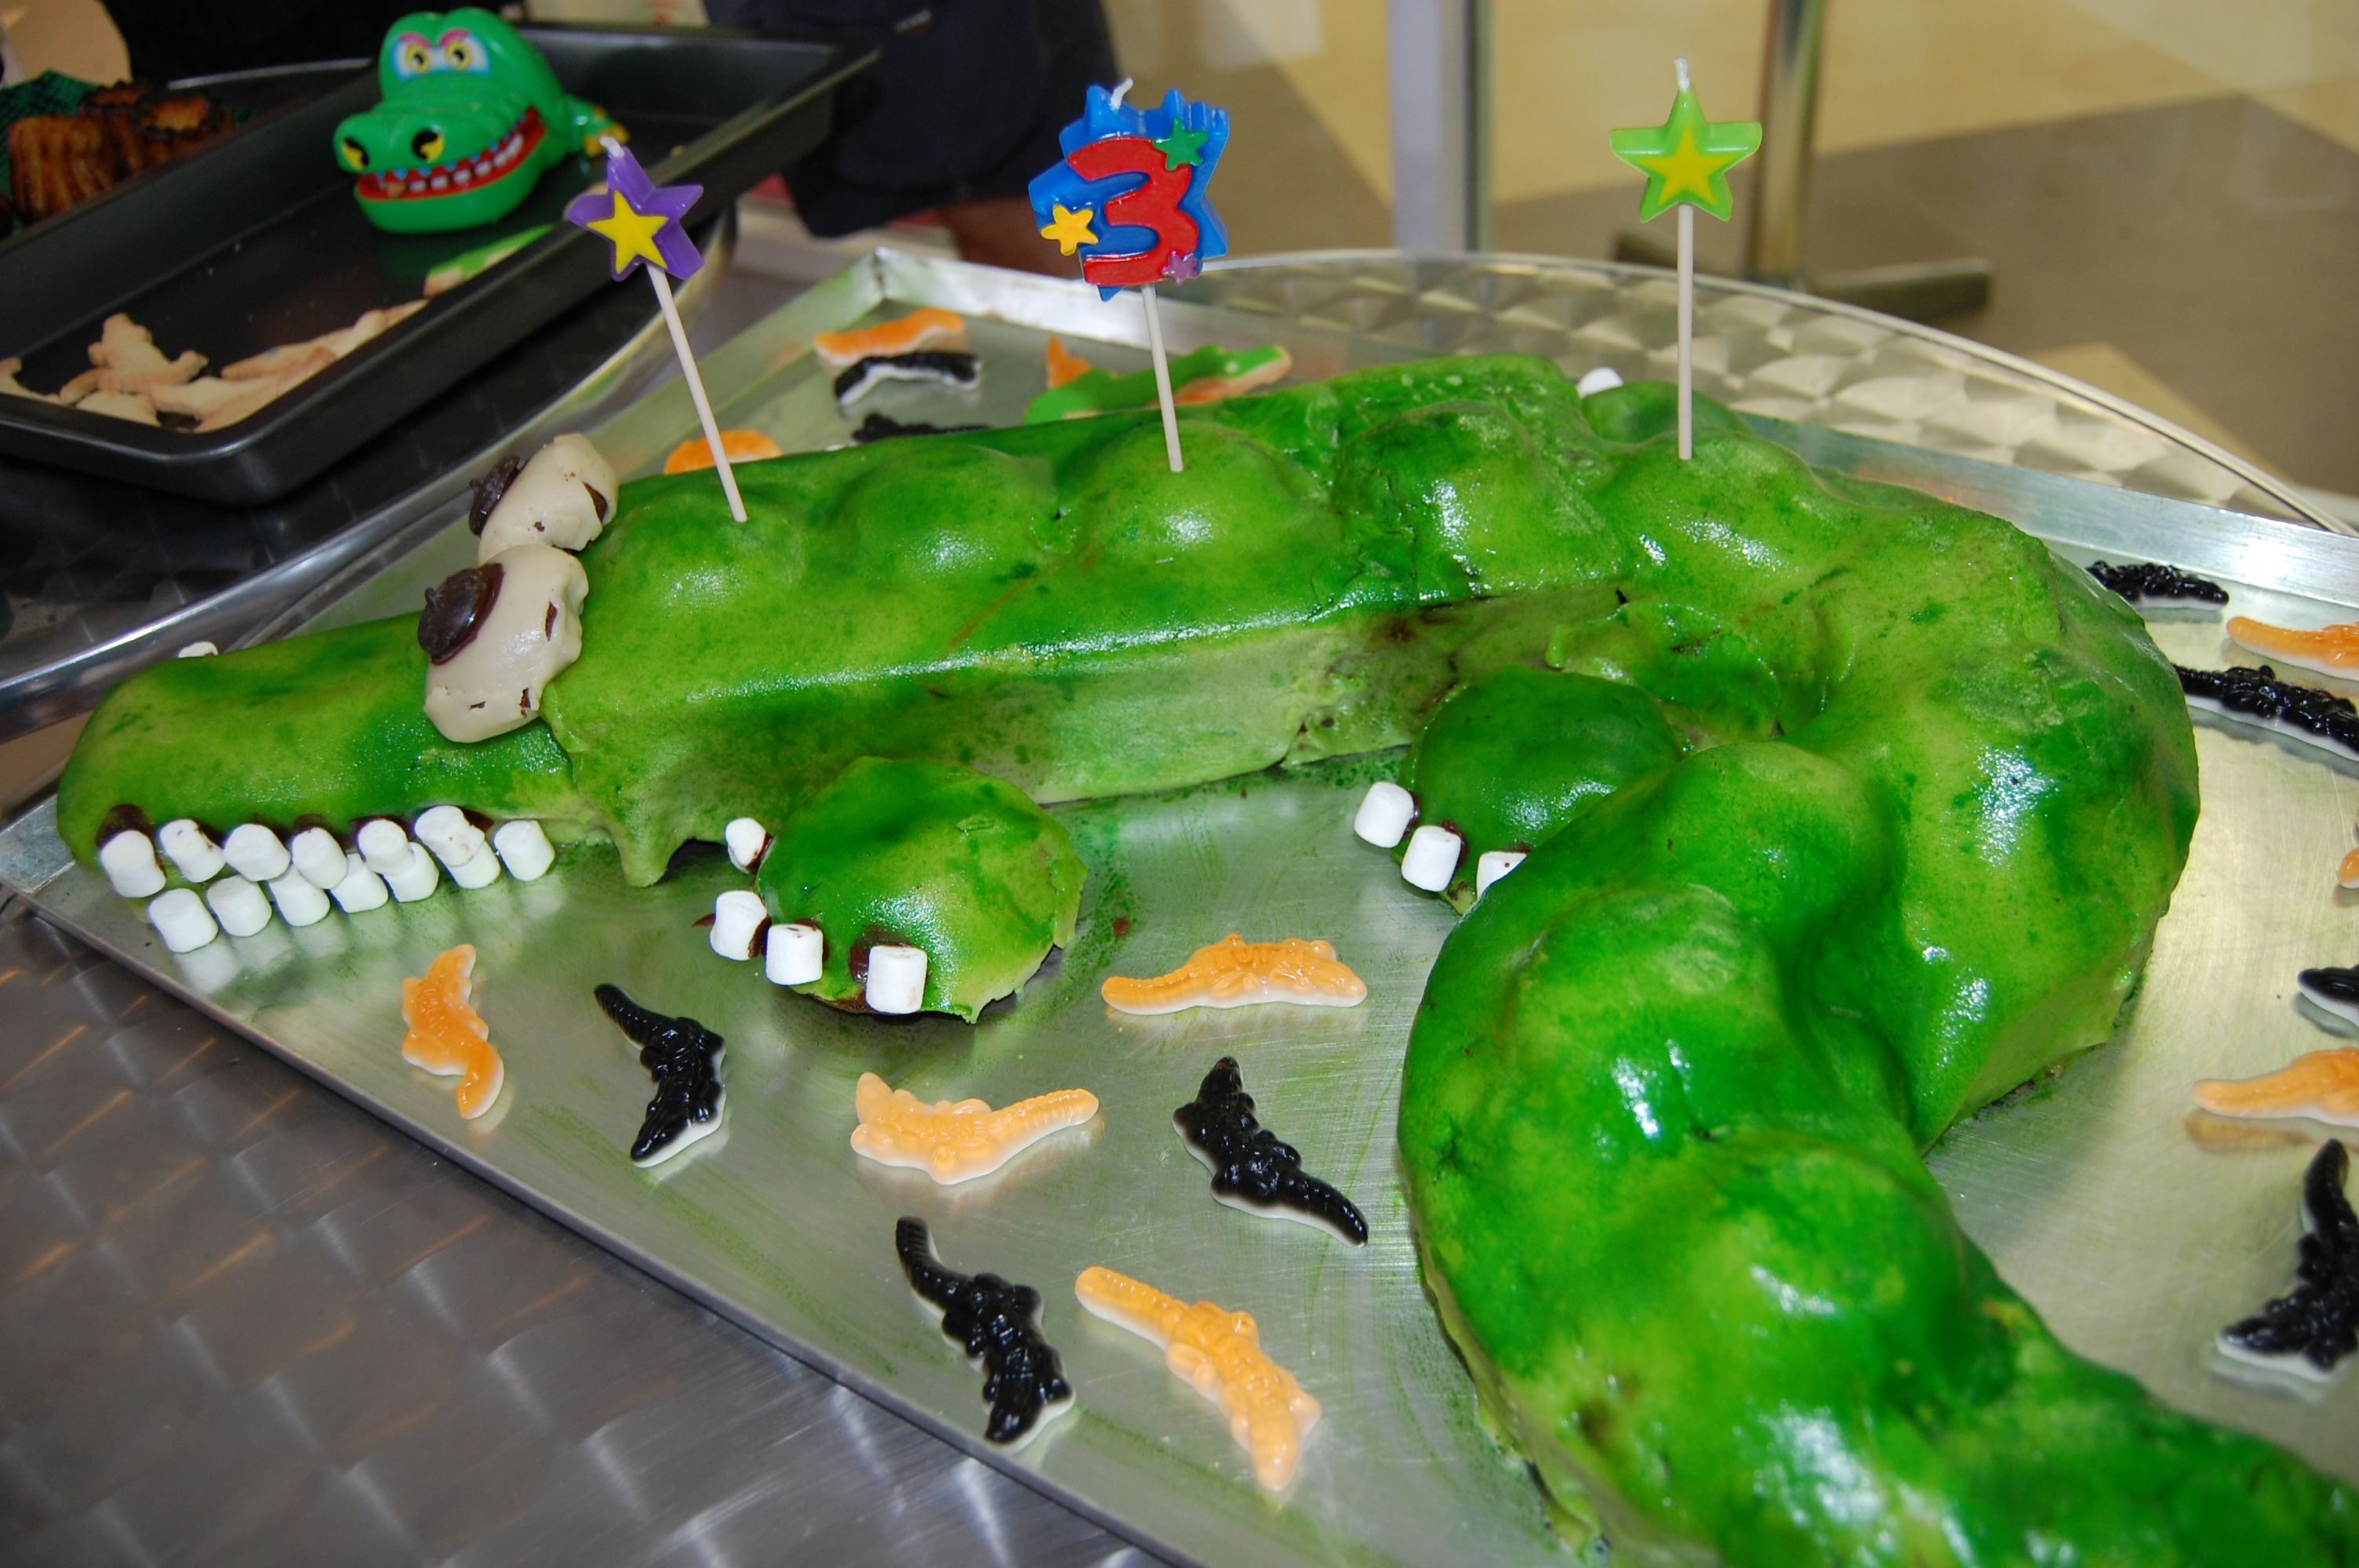 The Crococake, made of Chocolate moist cake + marzipan and sprayed ...